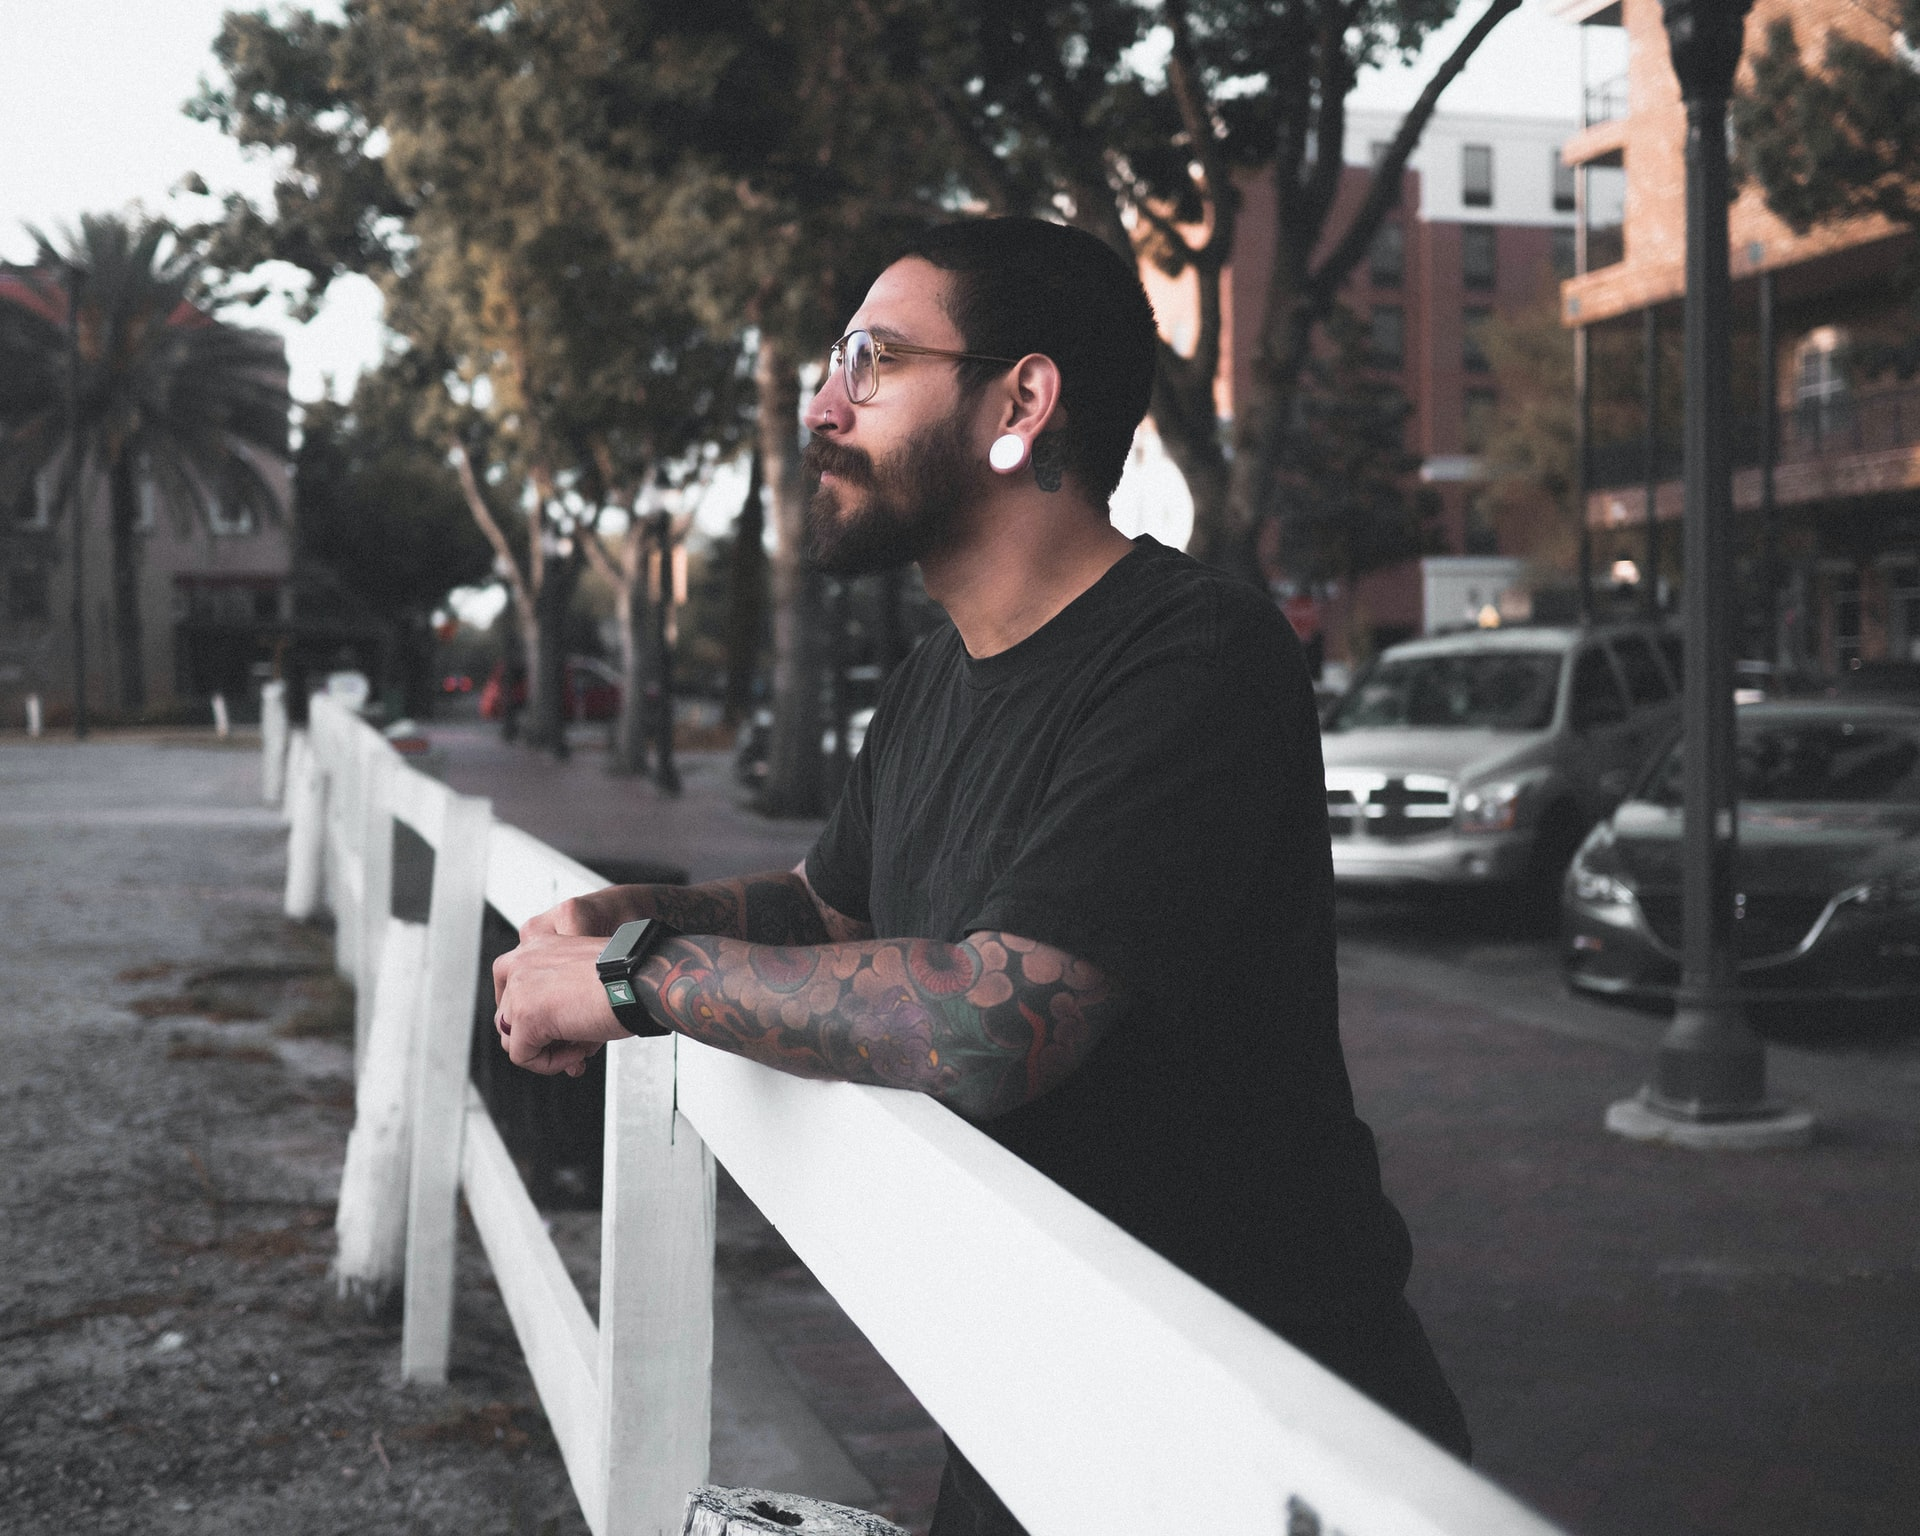 tattooed man with glasses and piercing leans on white rail during daytime